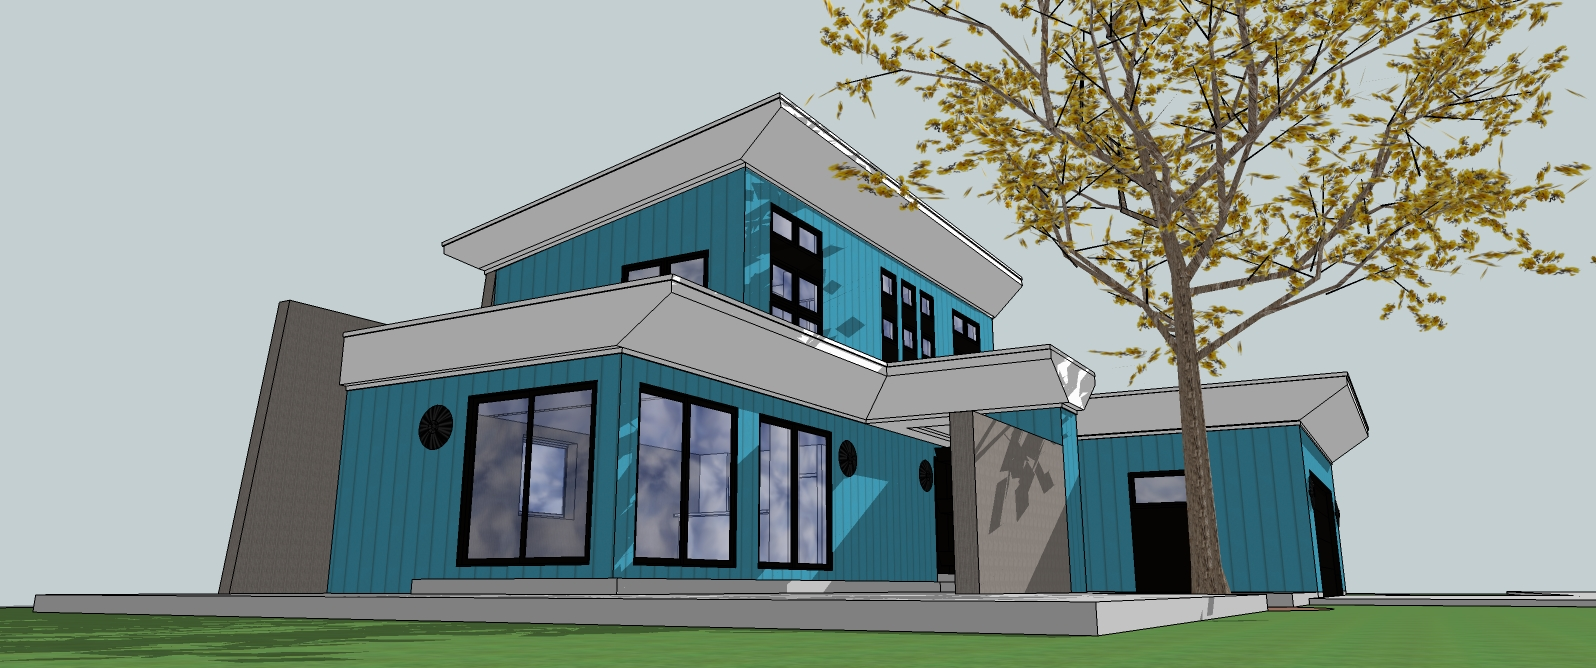 Ice – City Modern – HEISLEN DESIGNS Design Ice Cad Houses on radiant heating installation and design, autocad 3d design, art house design, top house design, fab house design, 2d house design, box structure design, house structure design, support structure design, business house design, google sketchup house design, technical drawing and design, solidworks house design, architecture house design, building structure design, japanese tea house design, manufacturing house design, engineering house design, classic house design, cnc house design,